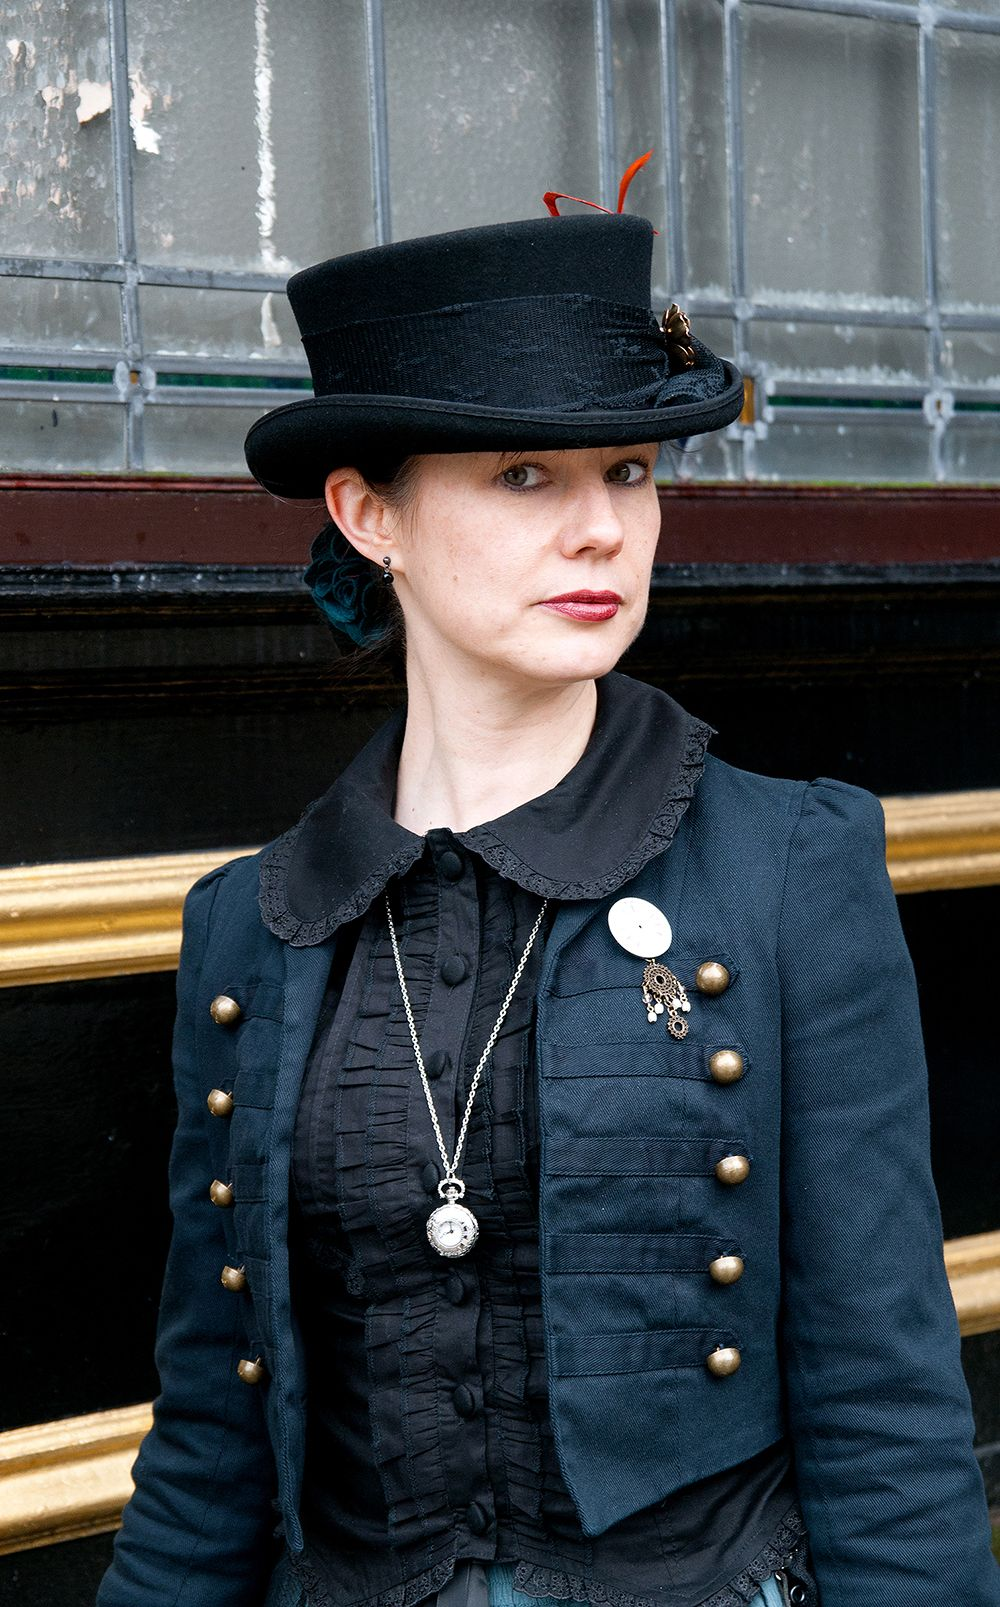 Pin by David Trace on Steampunk 01 Fashion, Captain hat